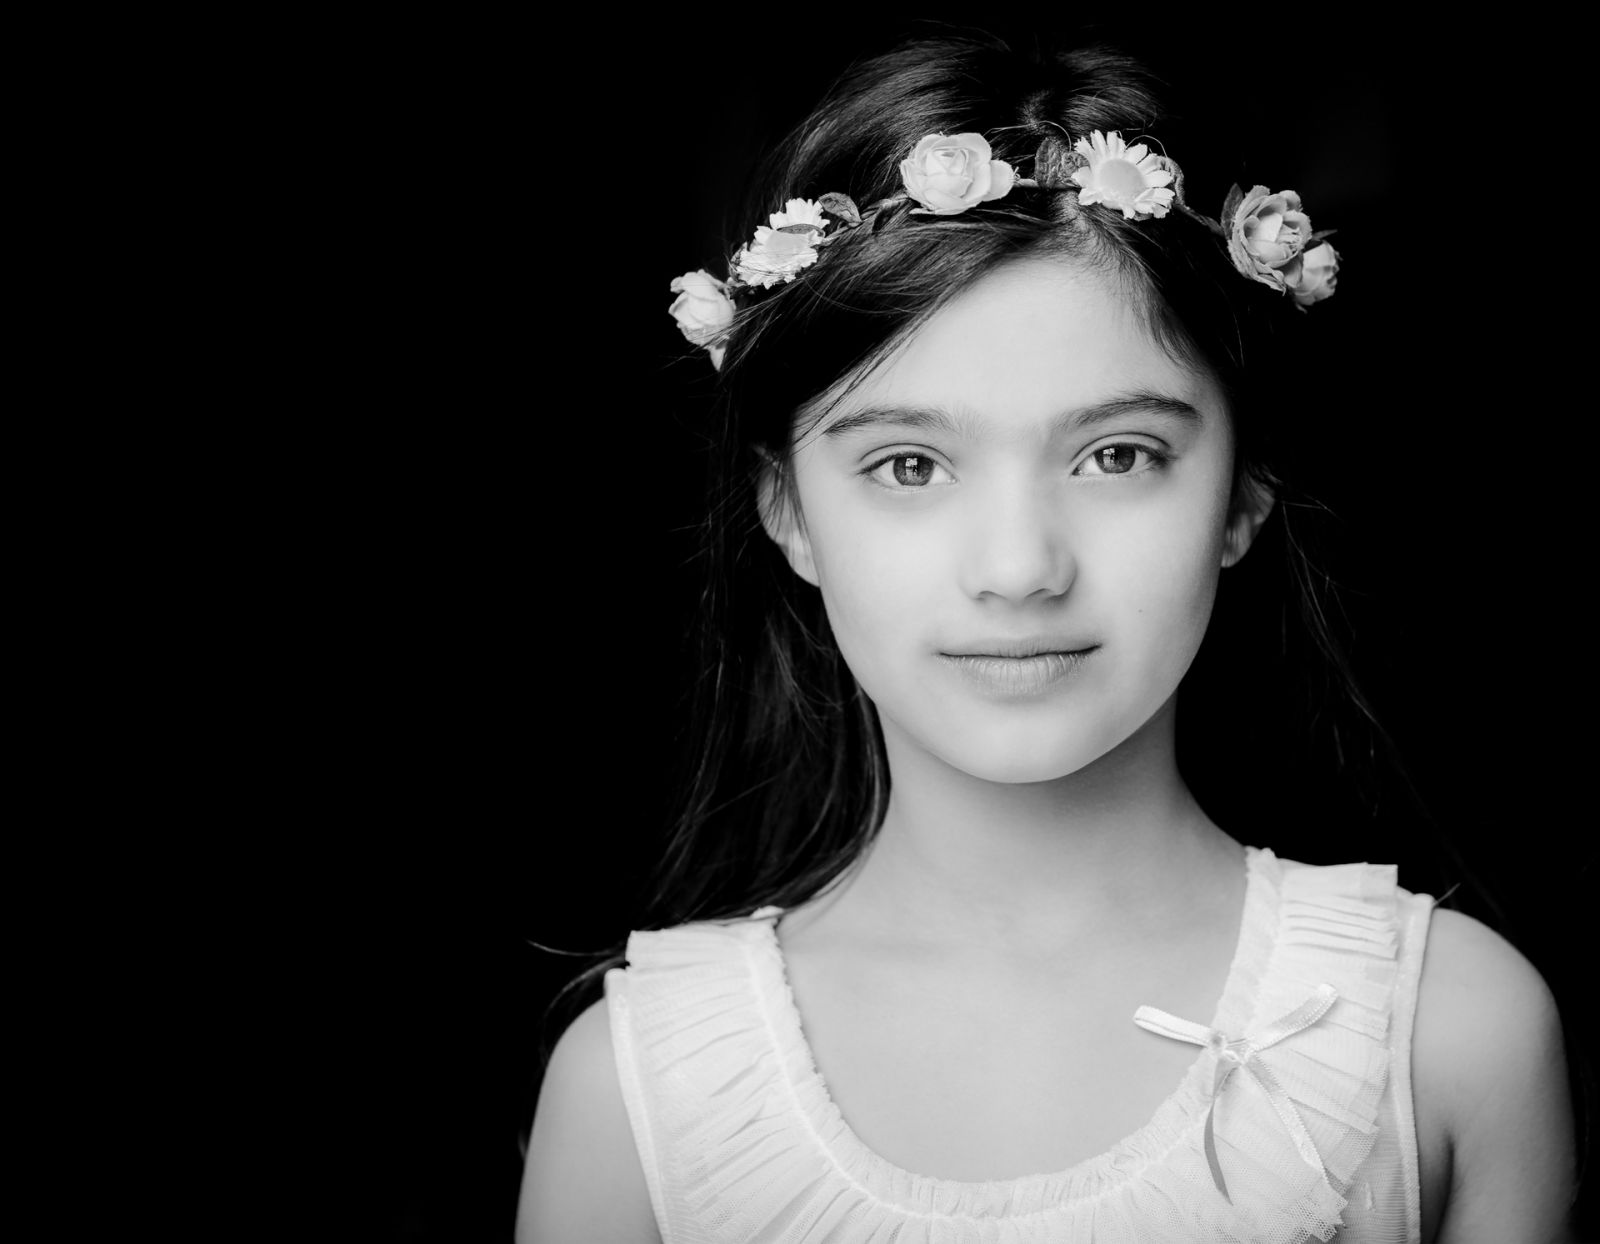 Black and white portrait of girl with flowers in hair